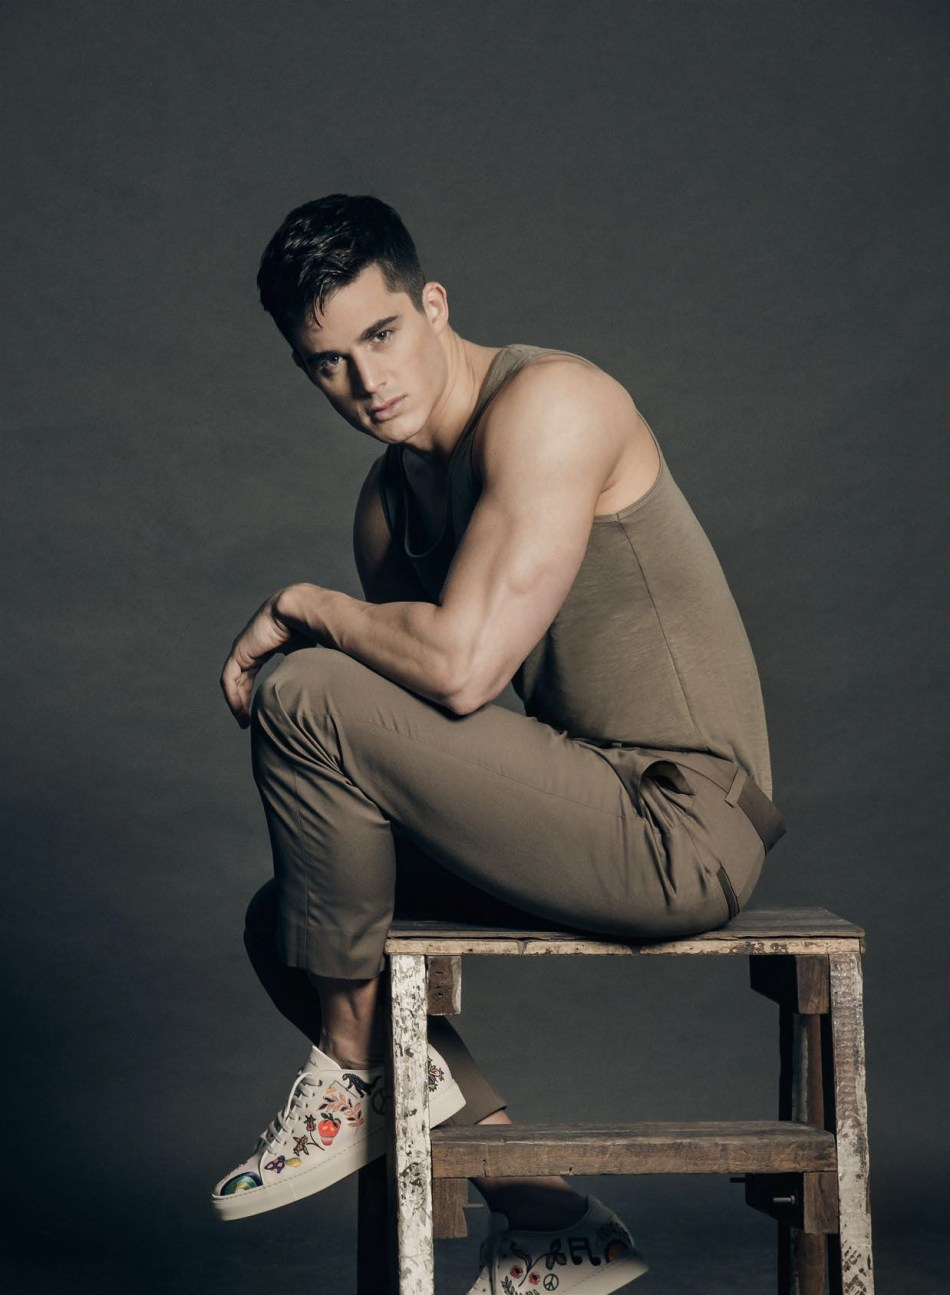 We know, we know. Mathematics isn't exactly a class favorite but it is time we tuck our nose back into our textbooks and break down the formula, especially one's that spill over to life's many conundrums. Just ask Pietro Boselli (@pietroboselli). Smashing any preconceived notions about men, modeling and mathematics, Pietro Boselli takes the charge this month of movement as we sit down for an exclusive with the world's hottest math teacher.